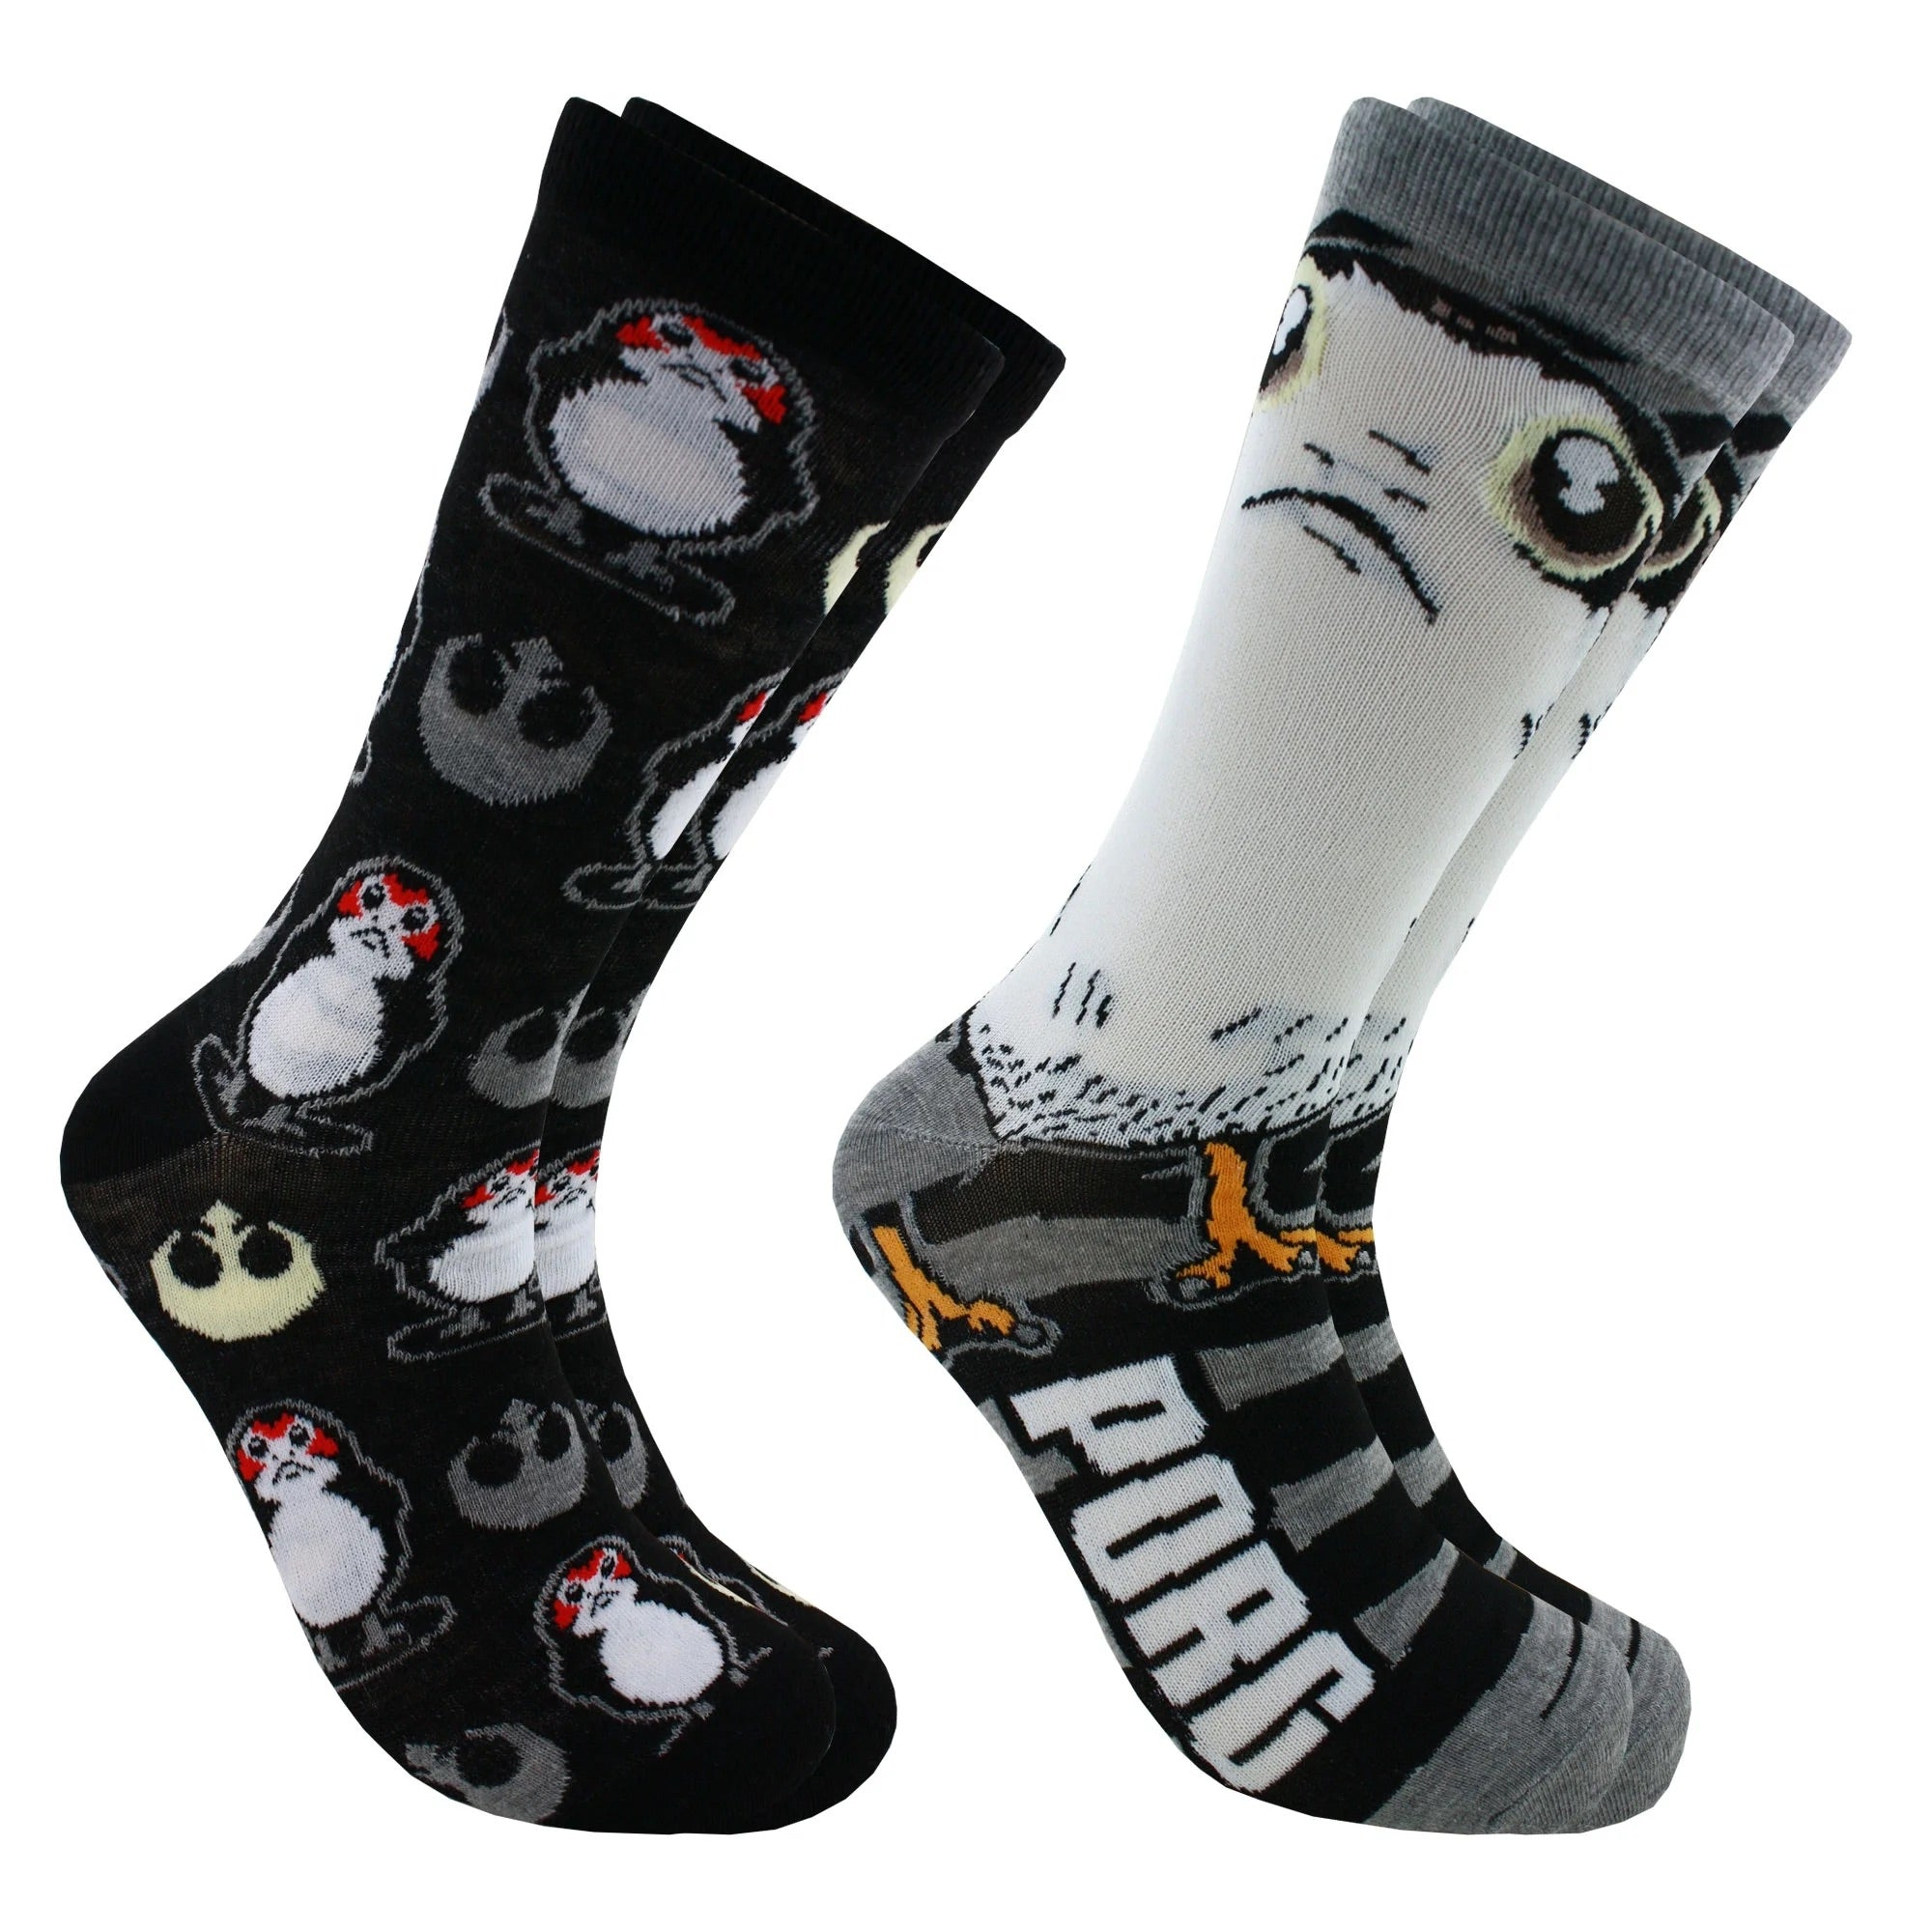 MEN'S 2PK CASUALS PORG